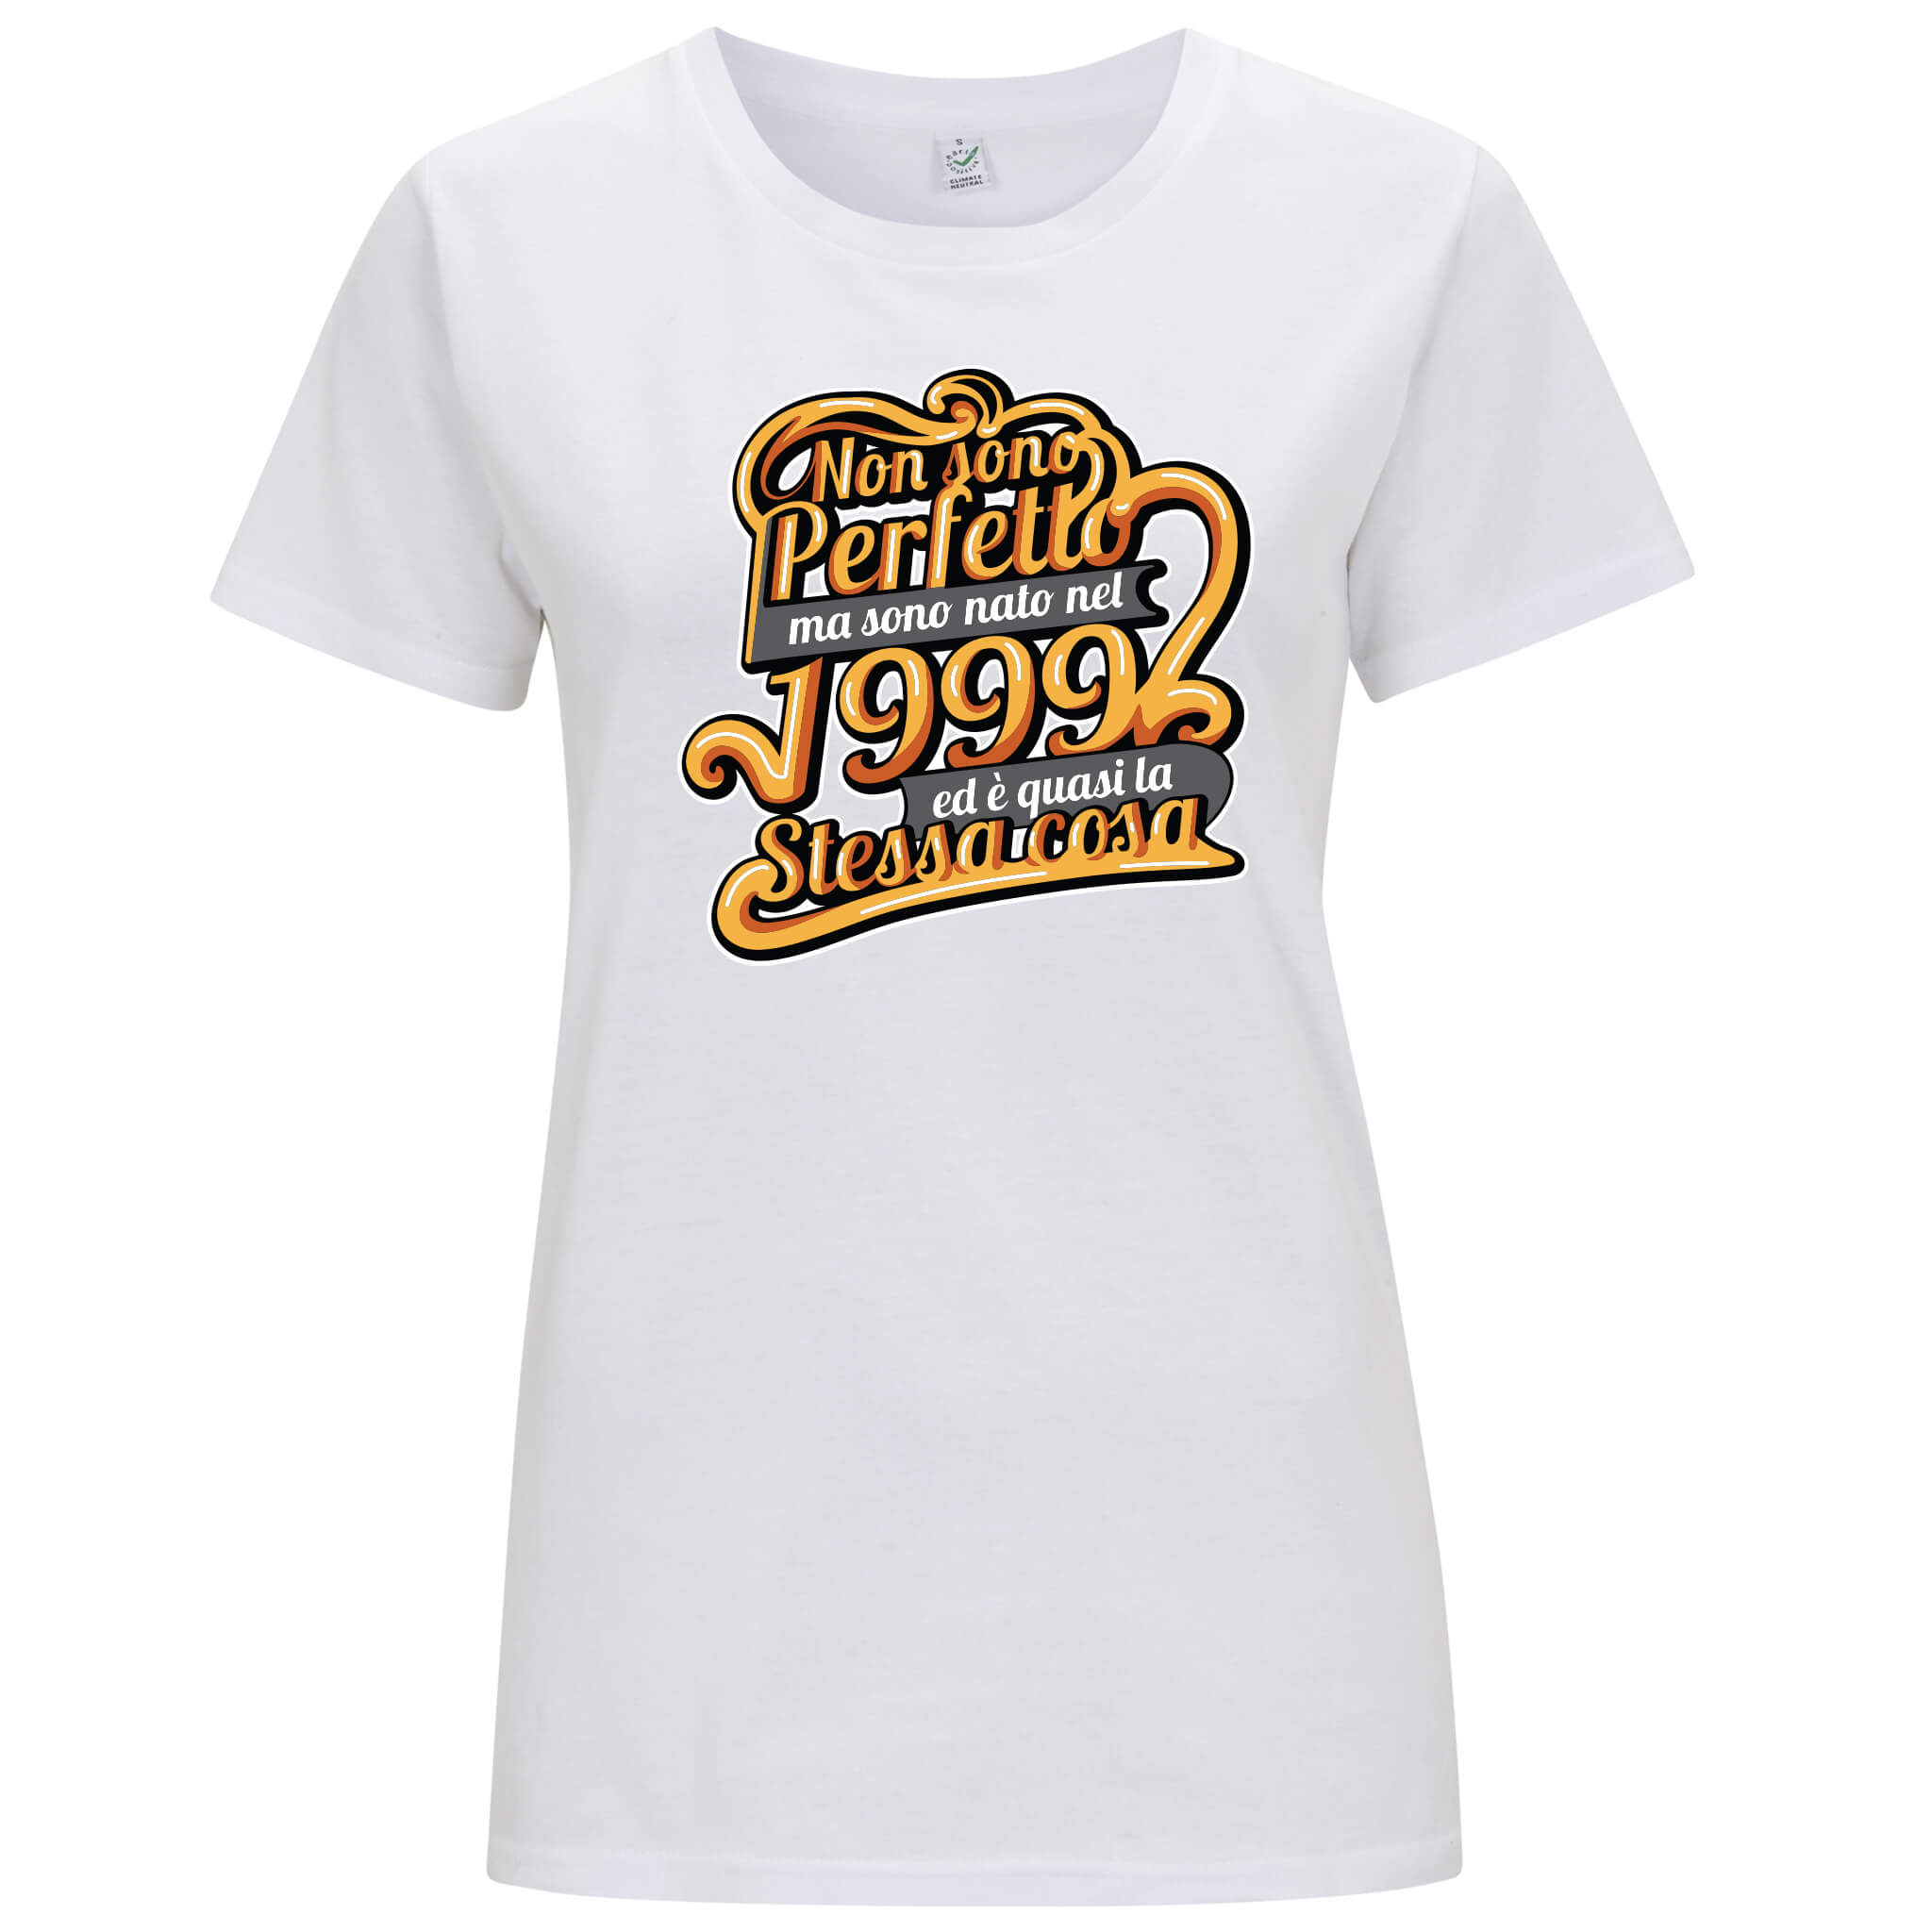 """Nato nel 1999"" - T-shirt Donna - T-Shirt by Fol The Brand"